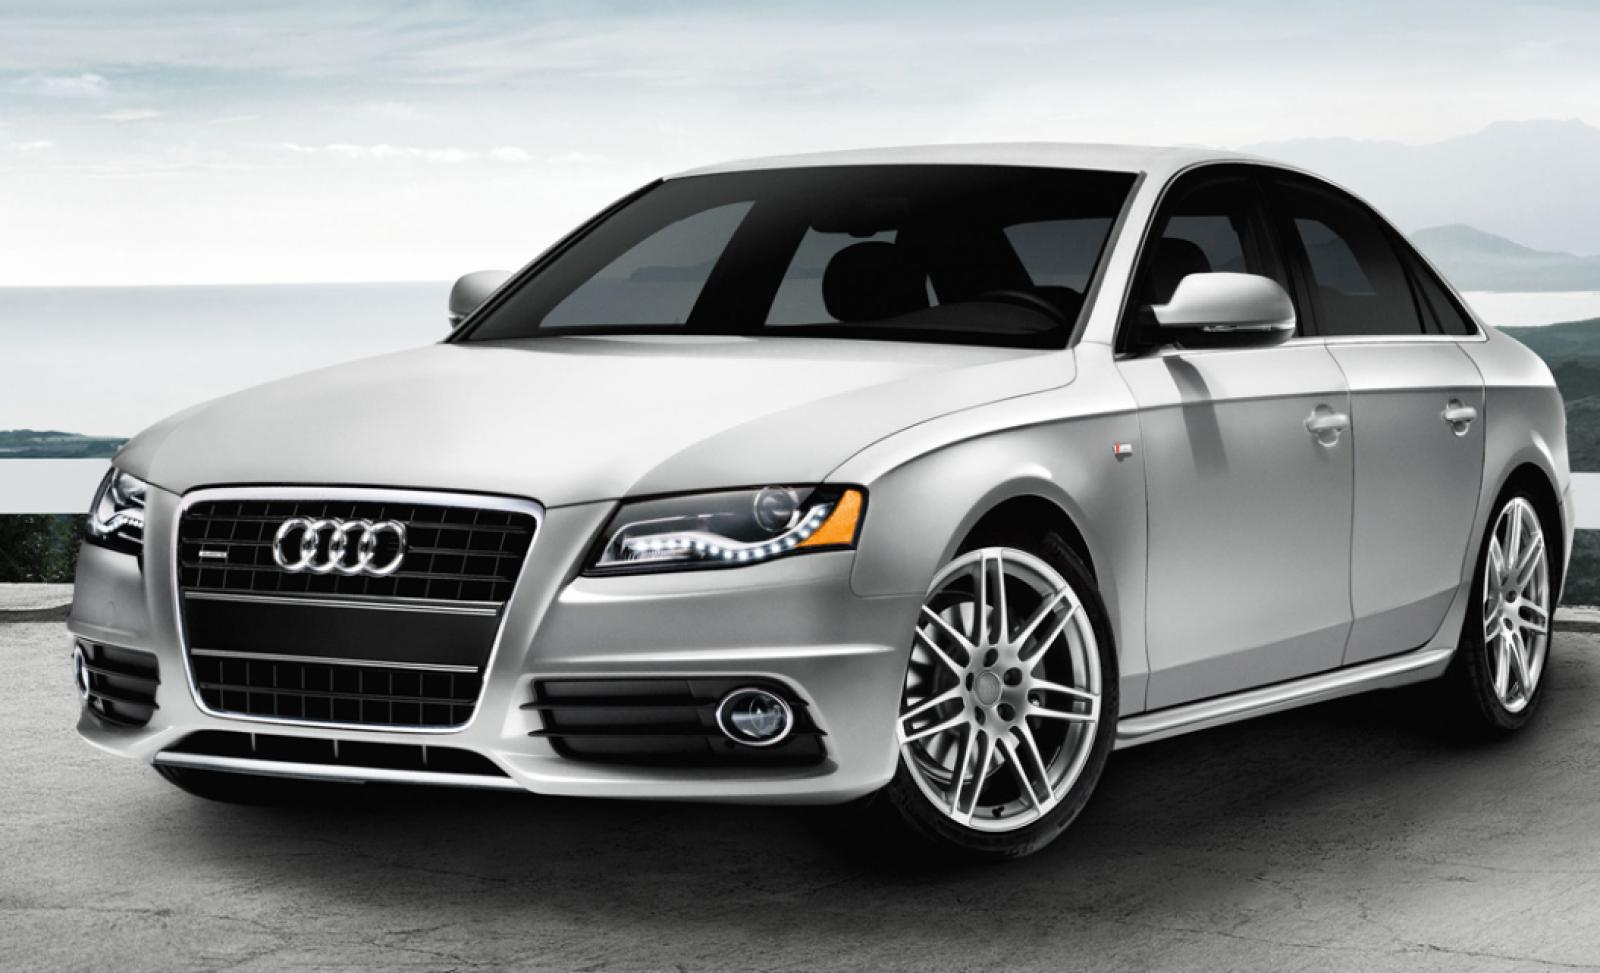 2011 audi a4 information and photos zomb drive. Black Bedroom Furniture Sets. Home Design Ideas